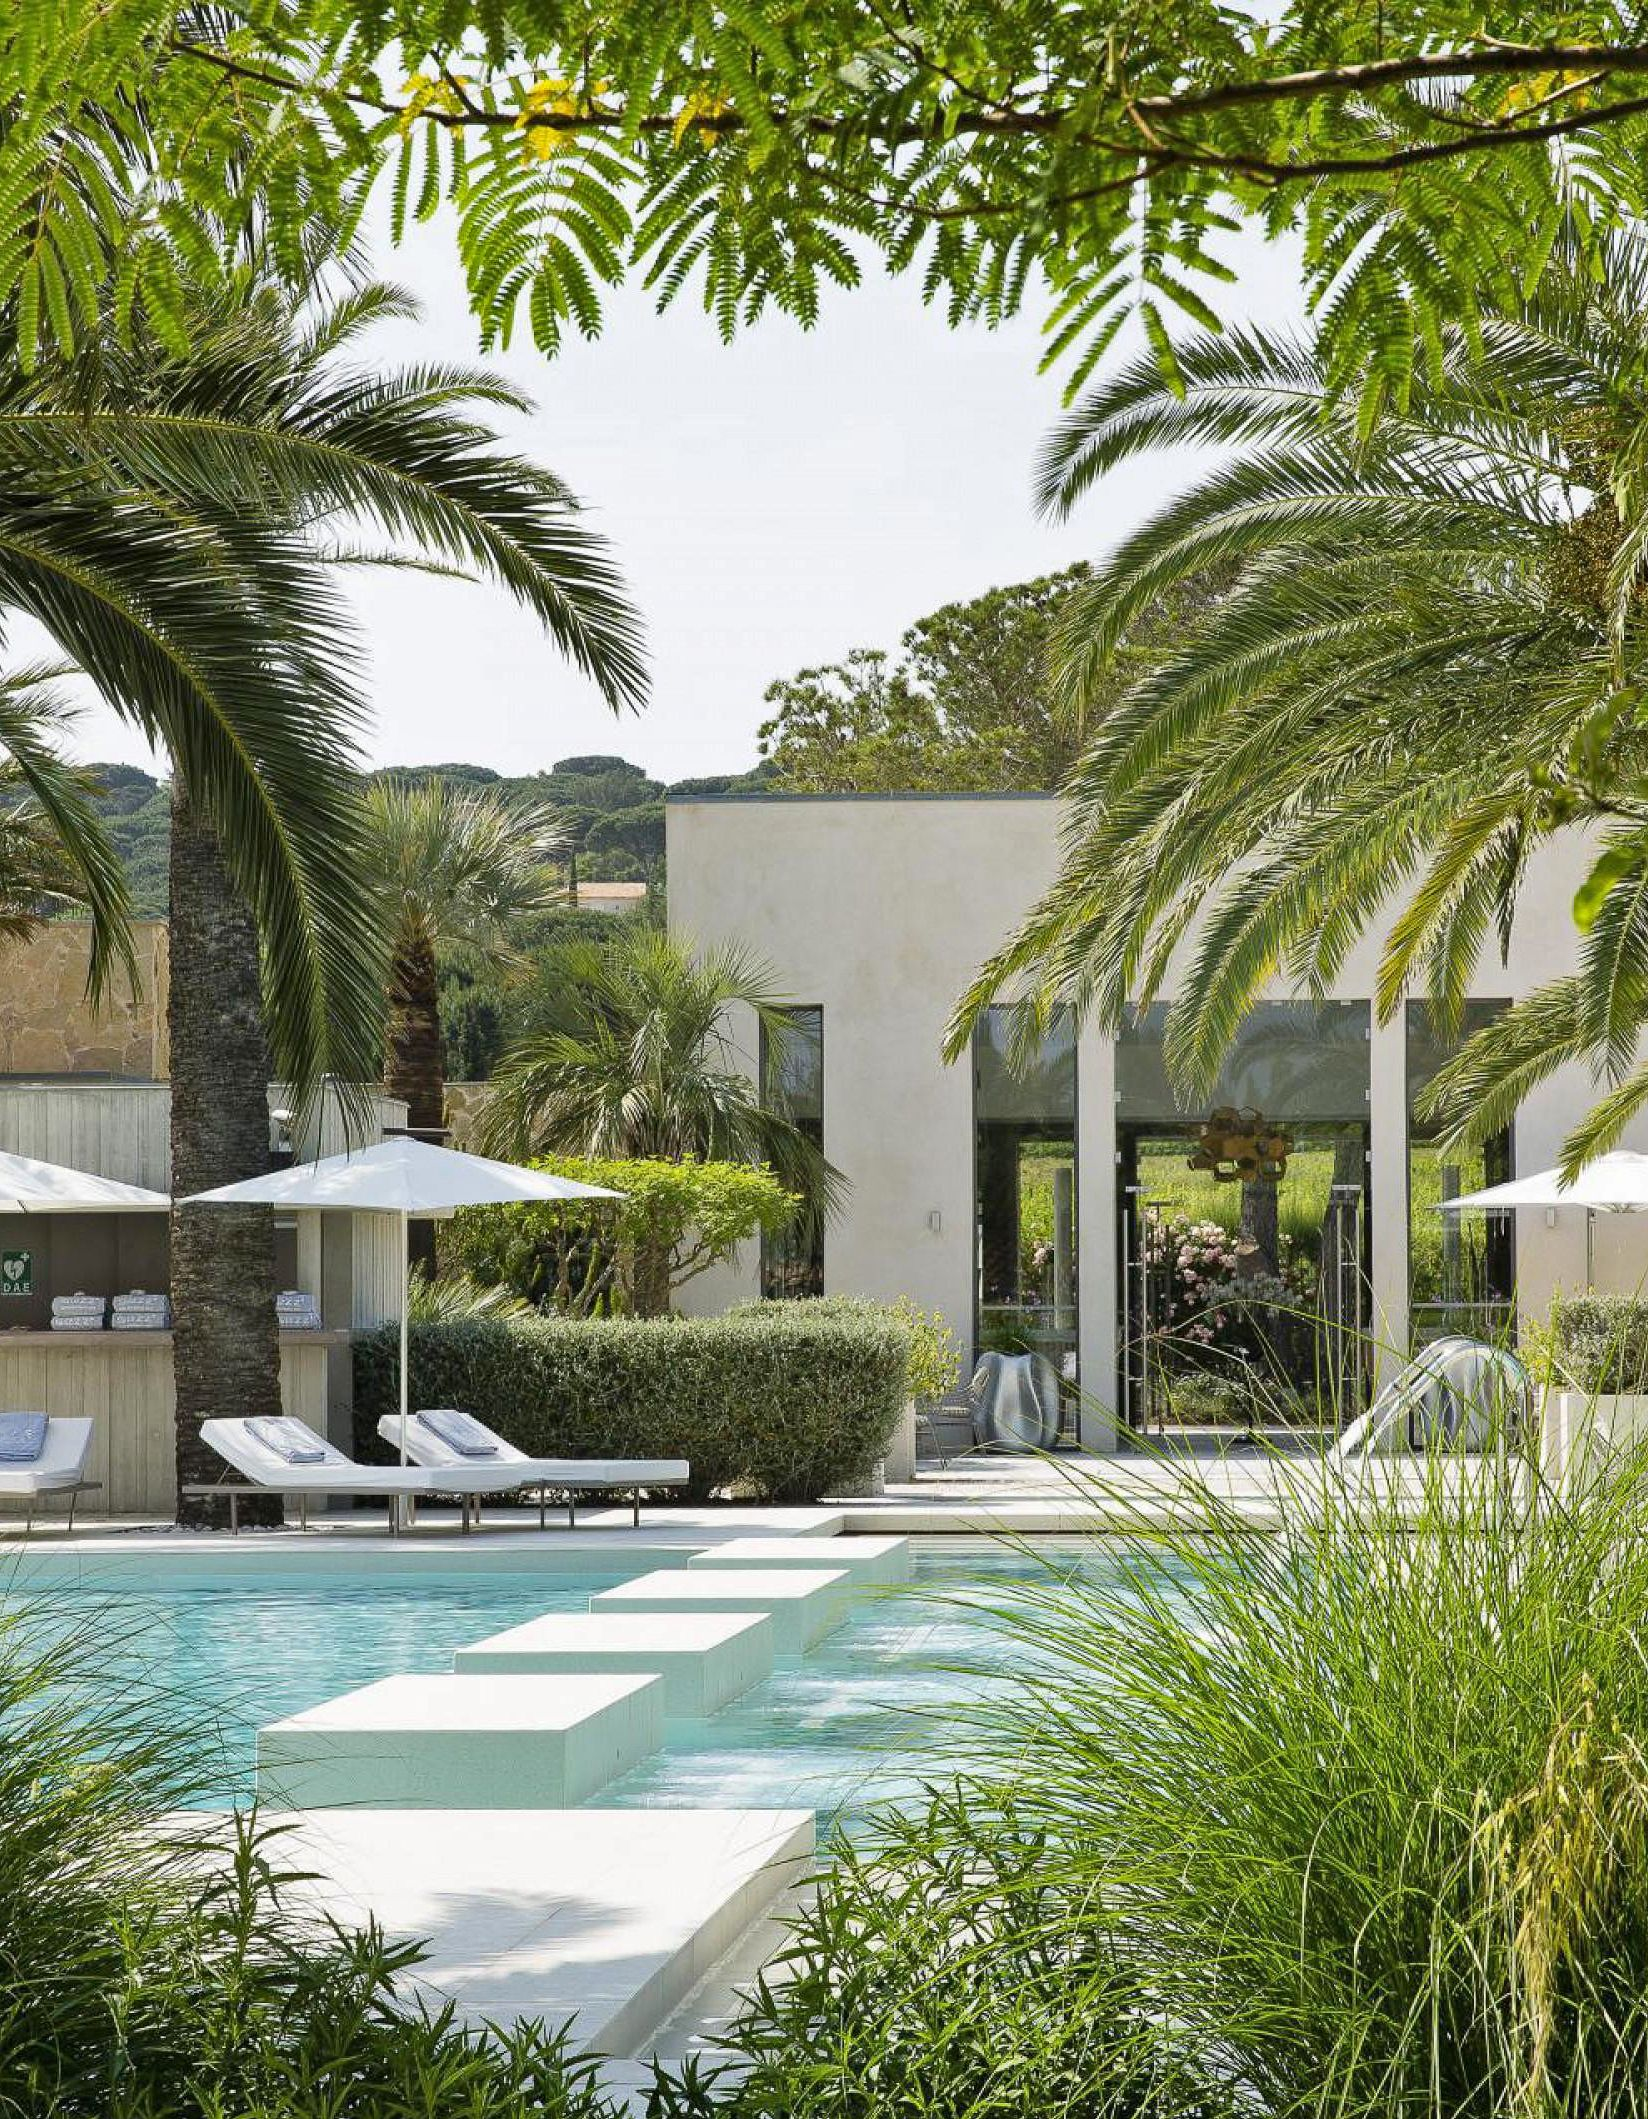 Hotel Sezz Saint Tropez, France • Hotel Review in 2020 ...